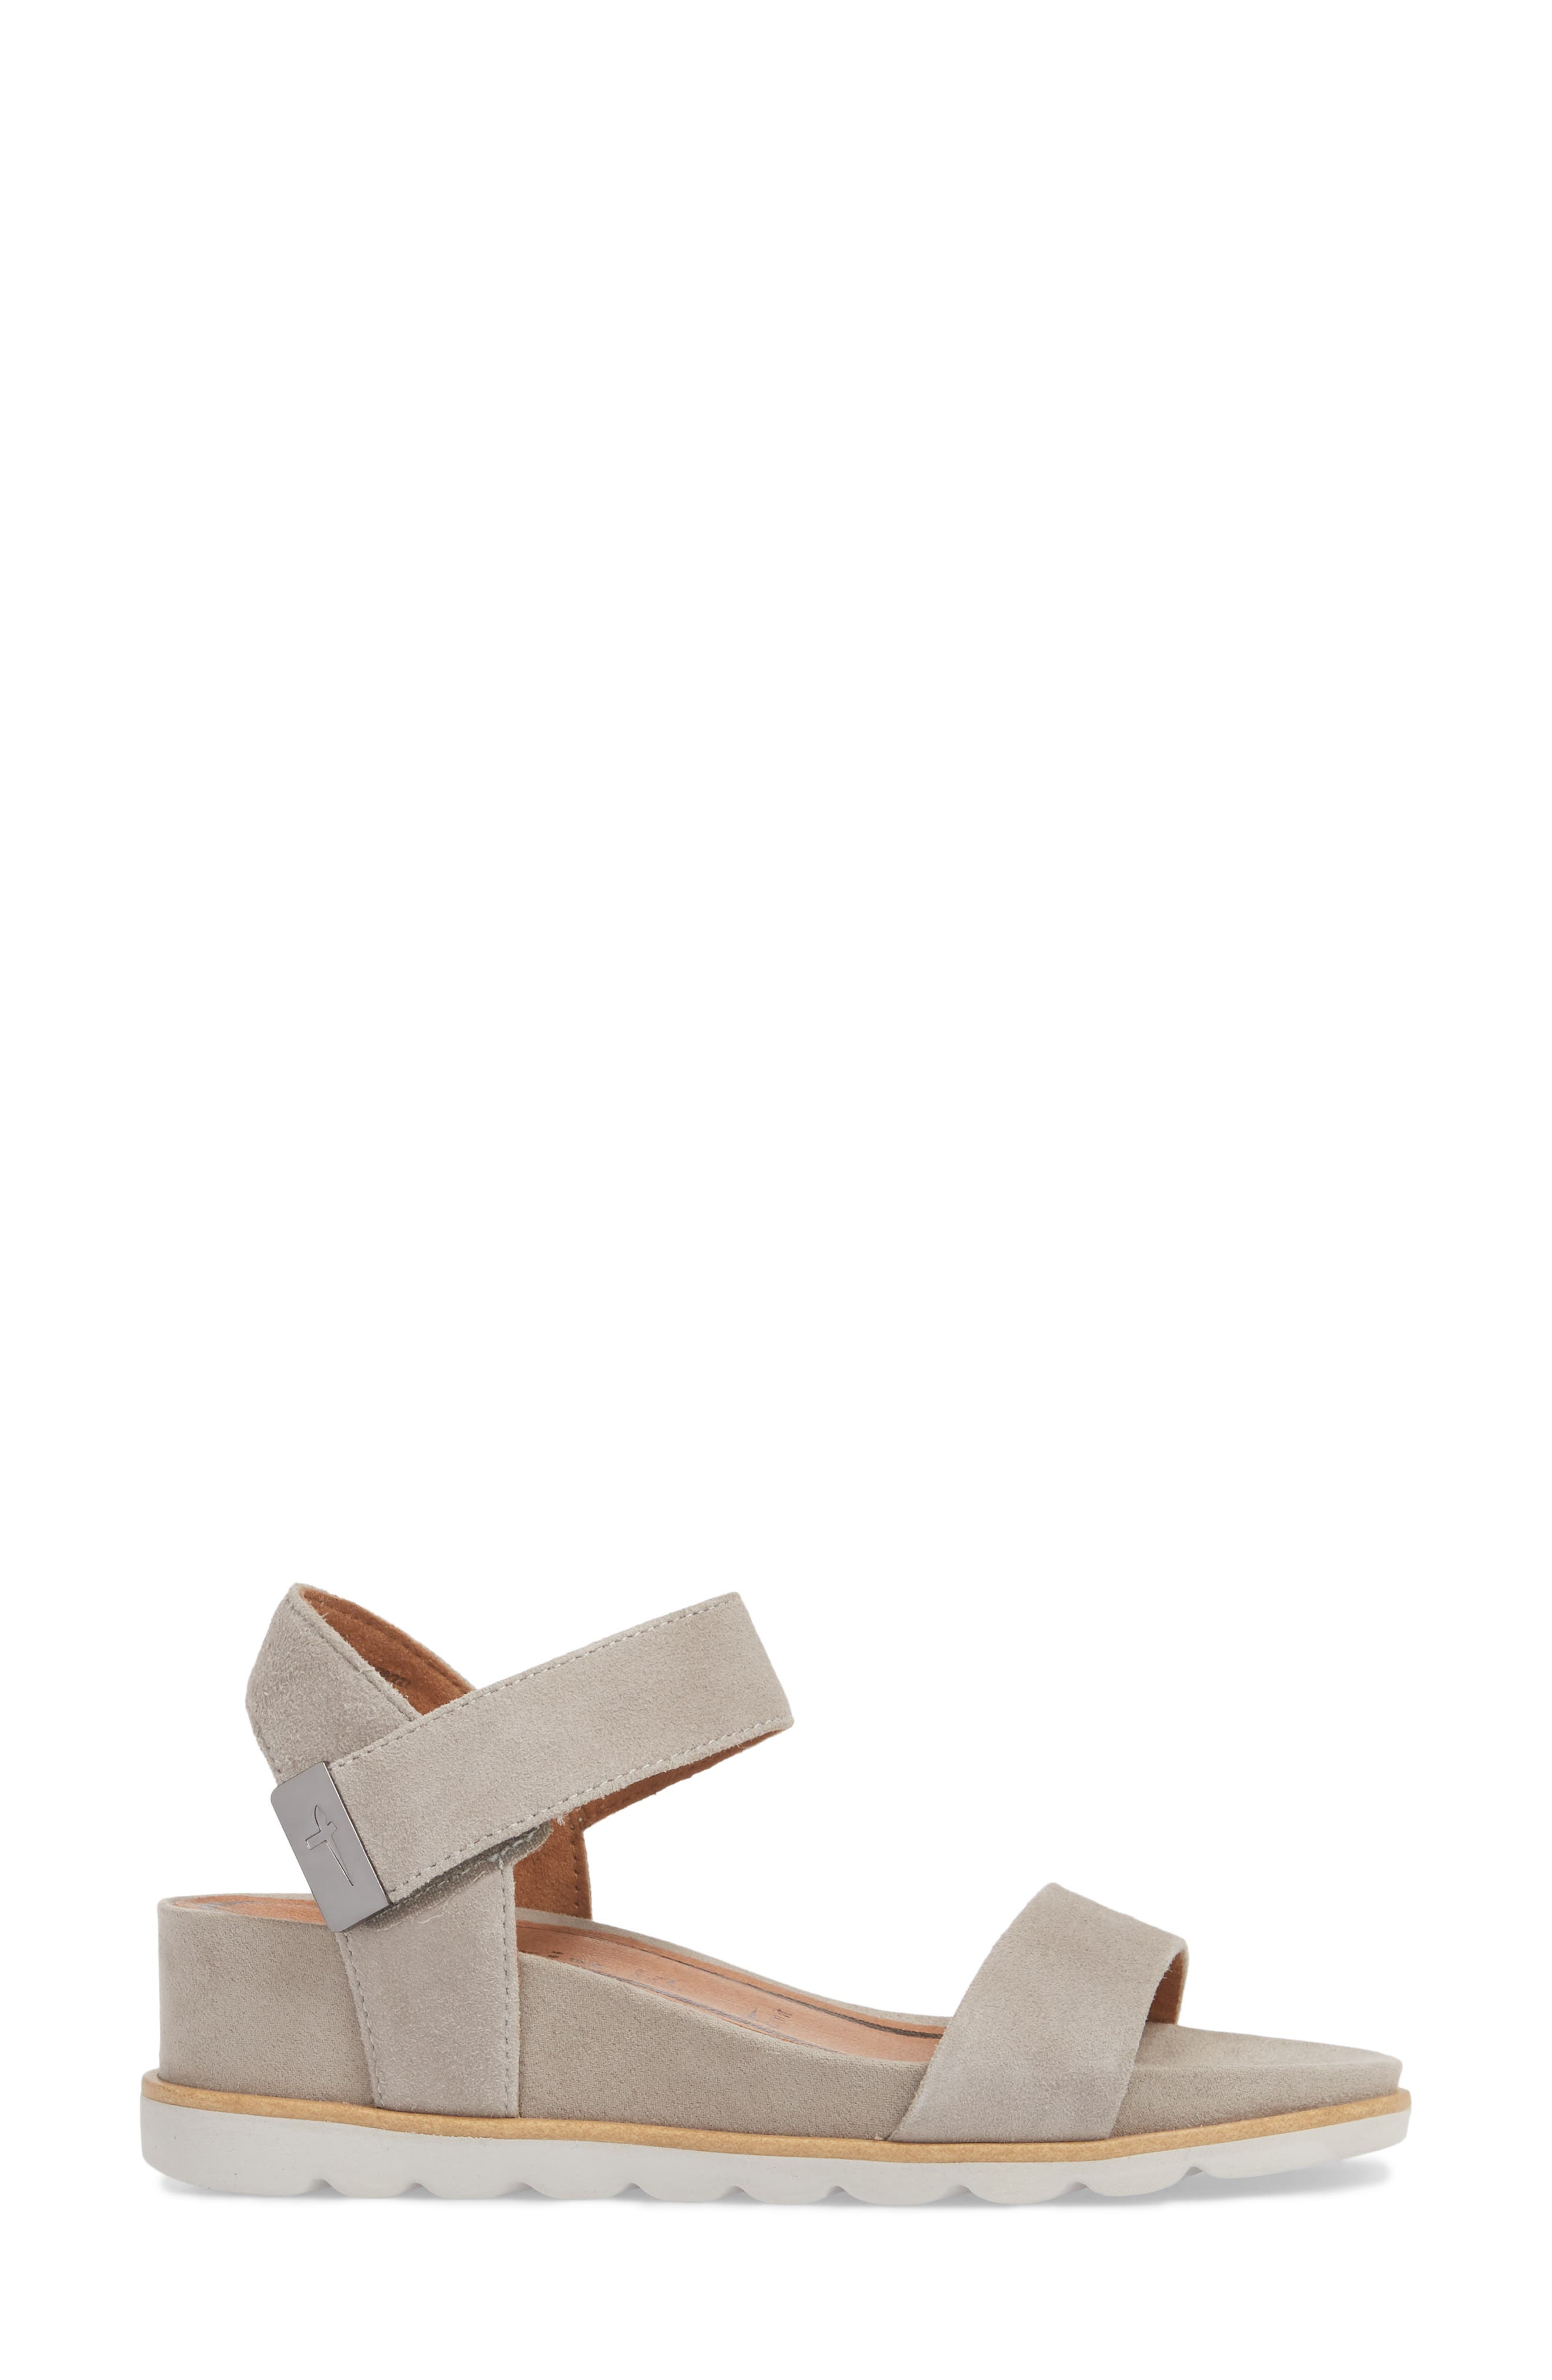 Cory Wedge Sandal,                             Alternate thumbnail 3, color,                             Cloud Suede